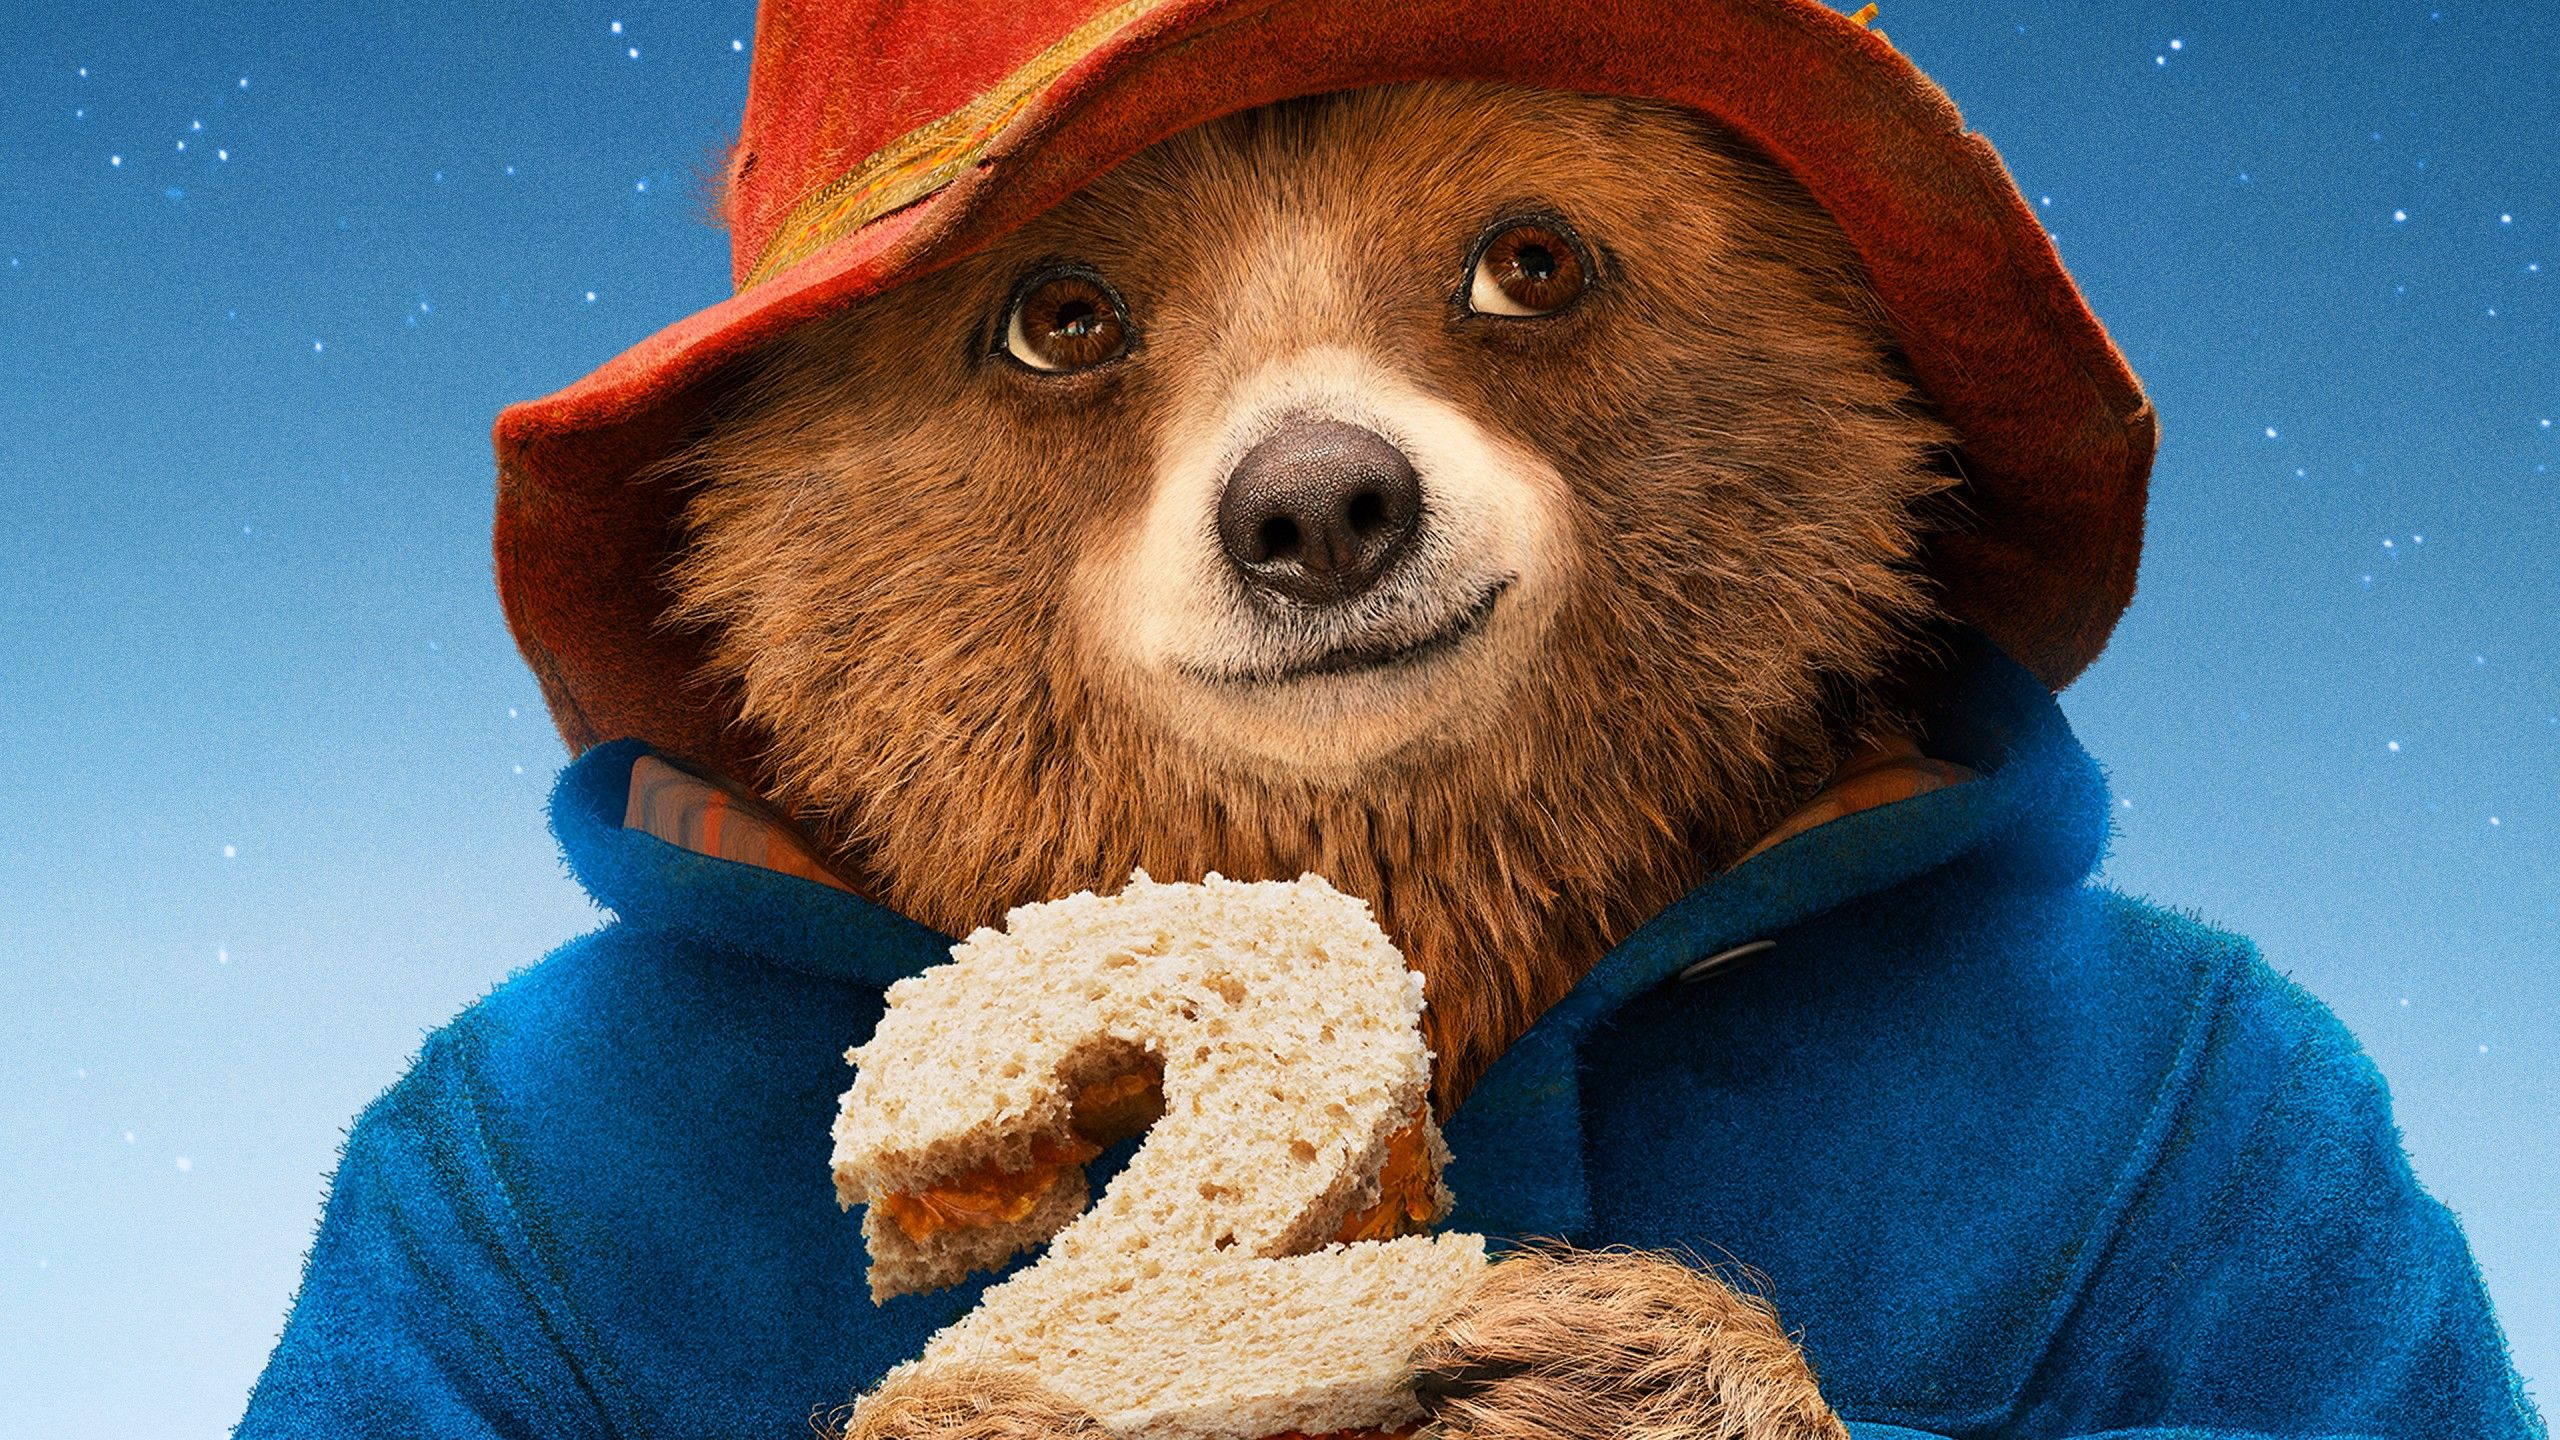 Wallpaper Paddington 2, Animation, Adventure, Comedy, 2017, 4K ...